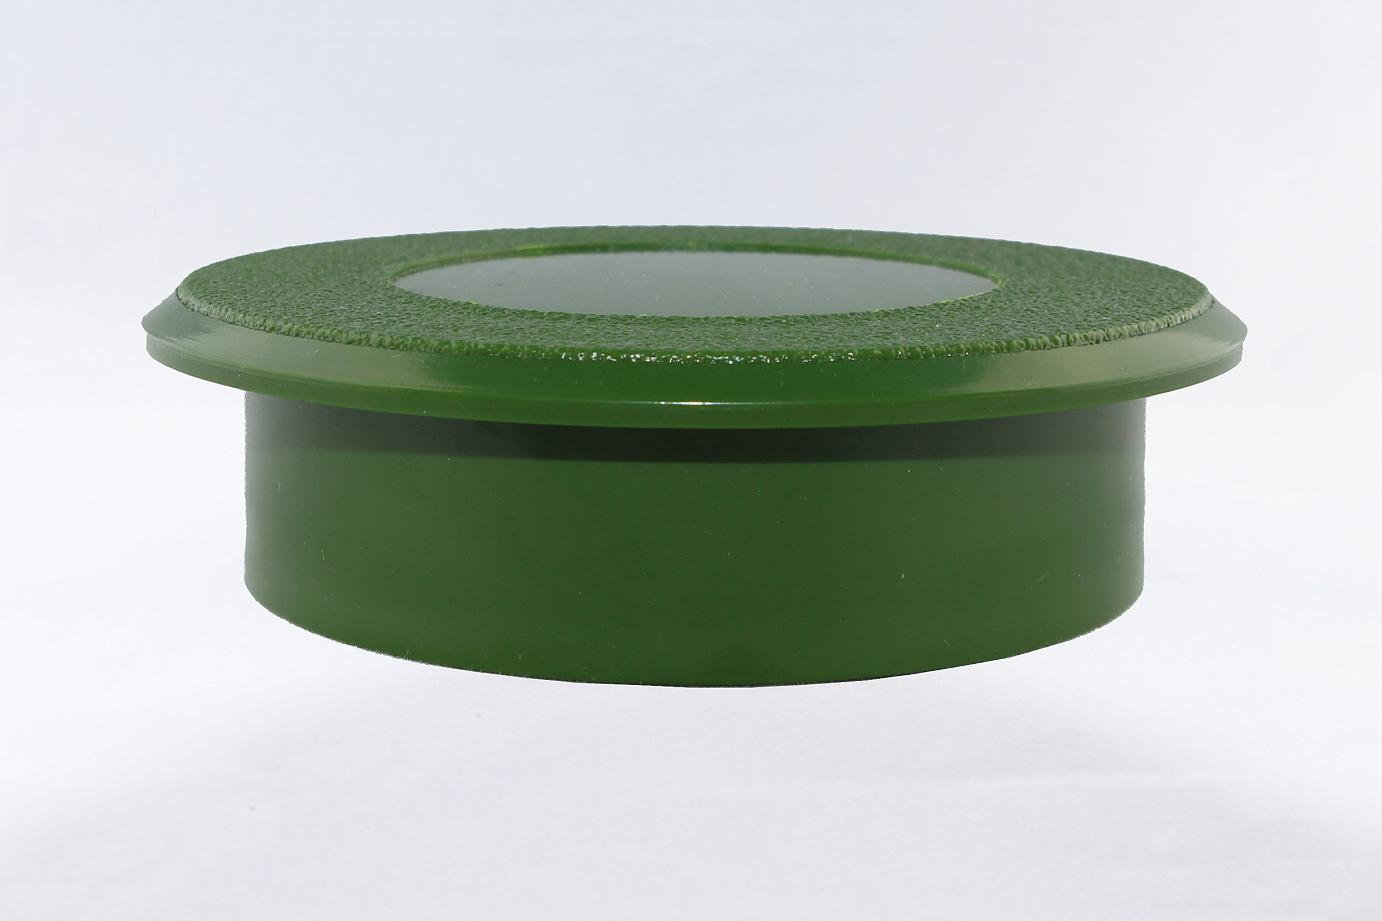 Golf Hole Cup Cover for Putting Green Cups Artificial Grass Washington Synthetic Grass Tools